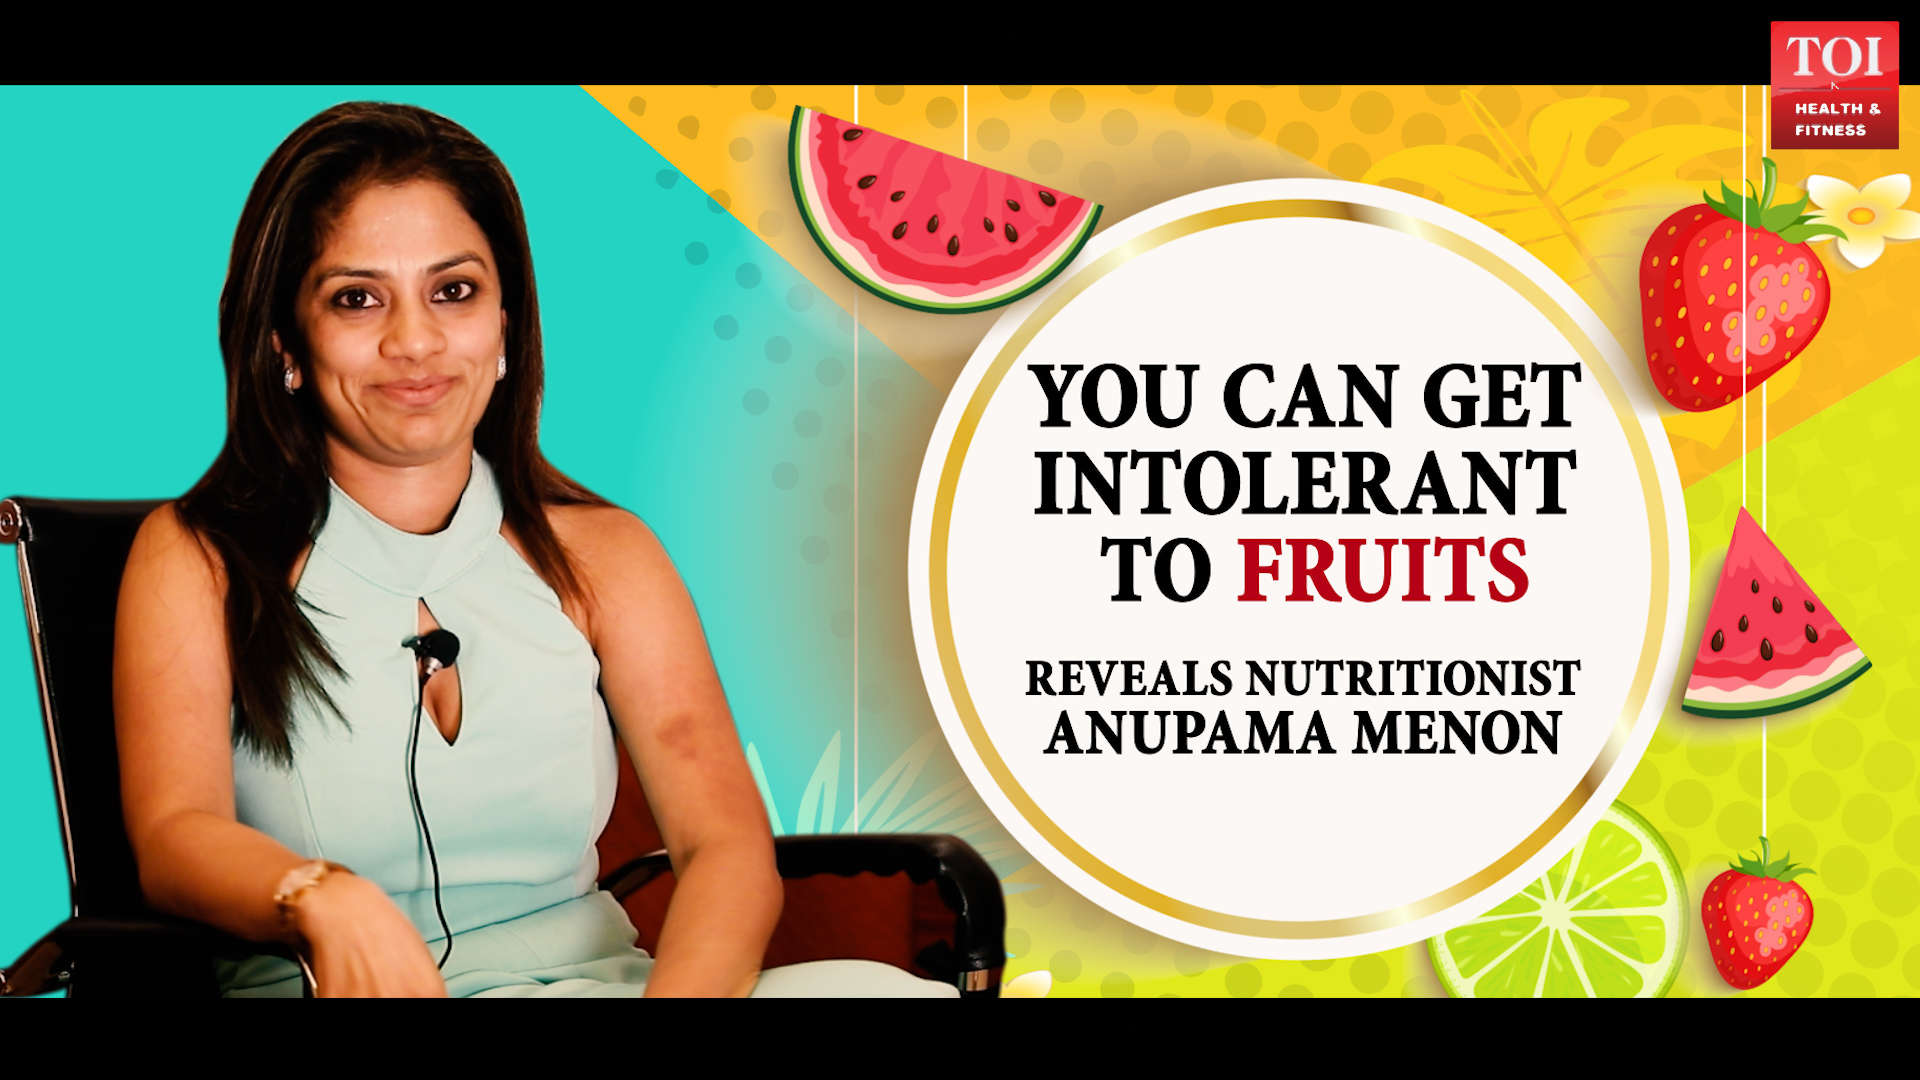 There is something called fruit intolerance, reveals nutritionist Anupama Menon